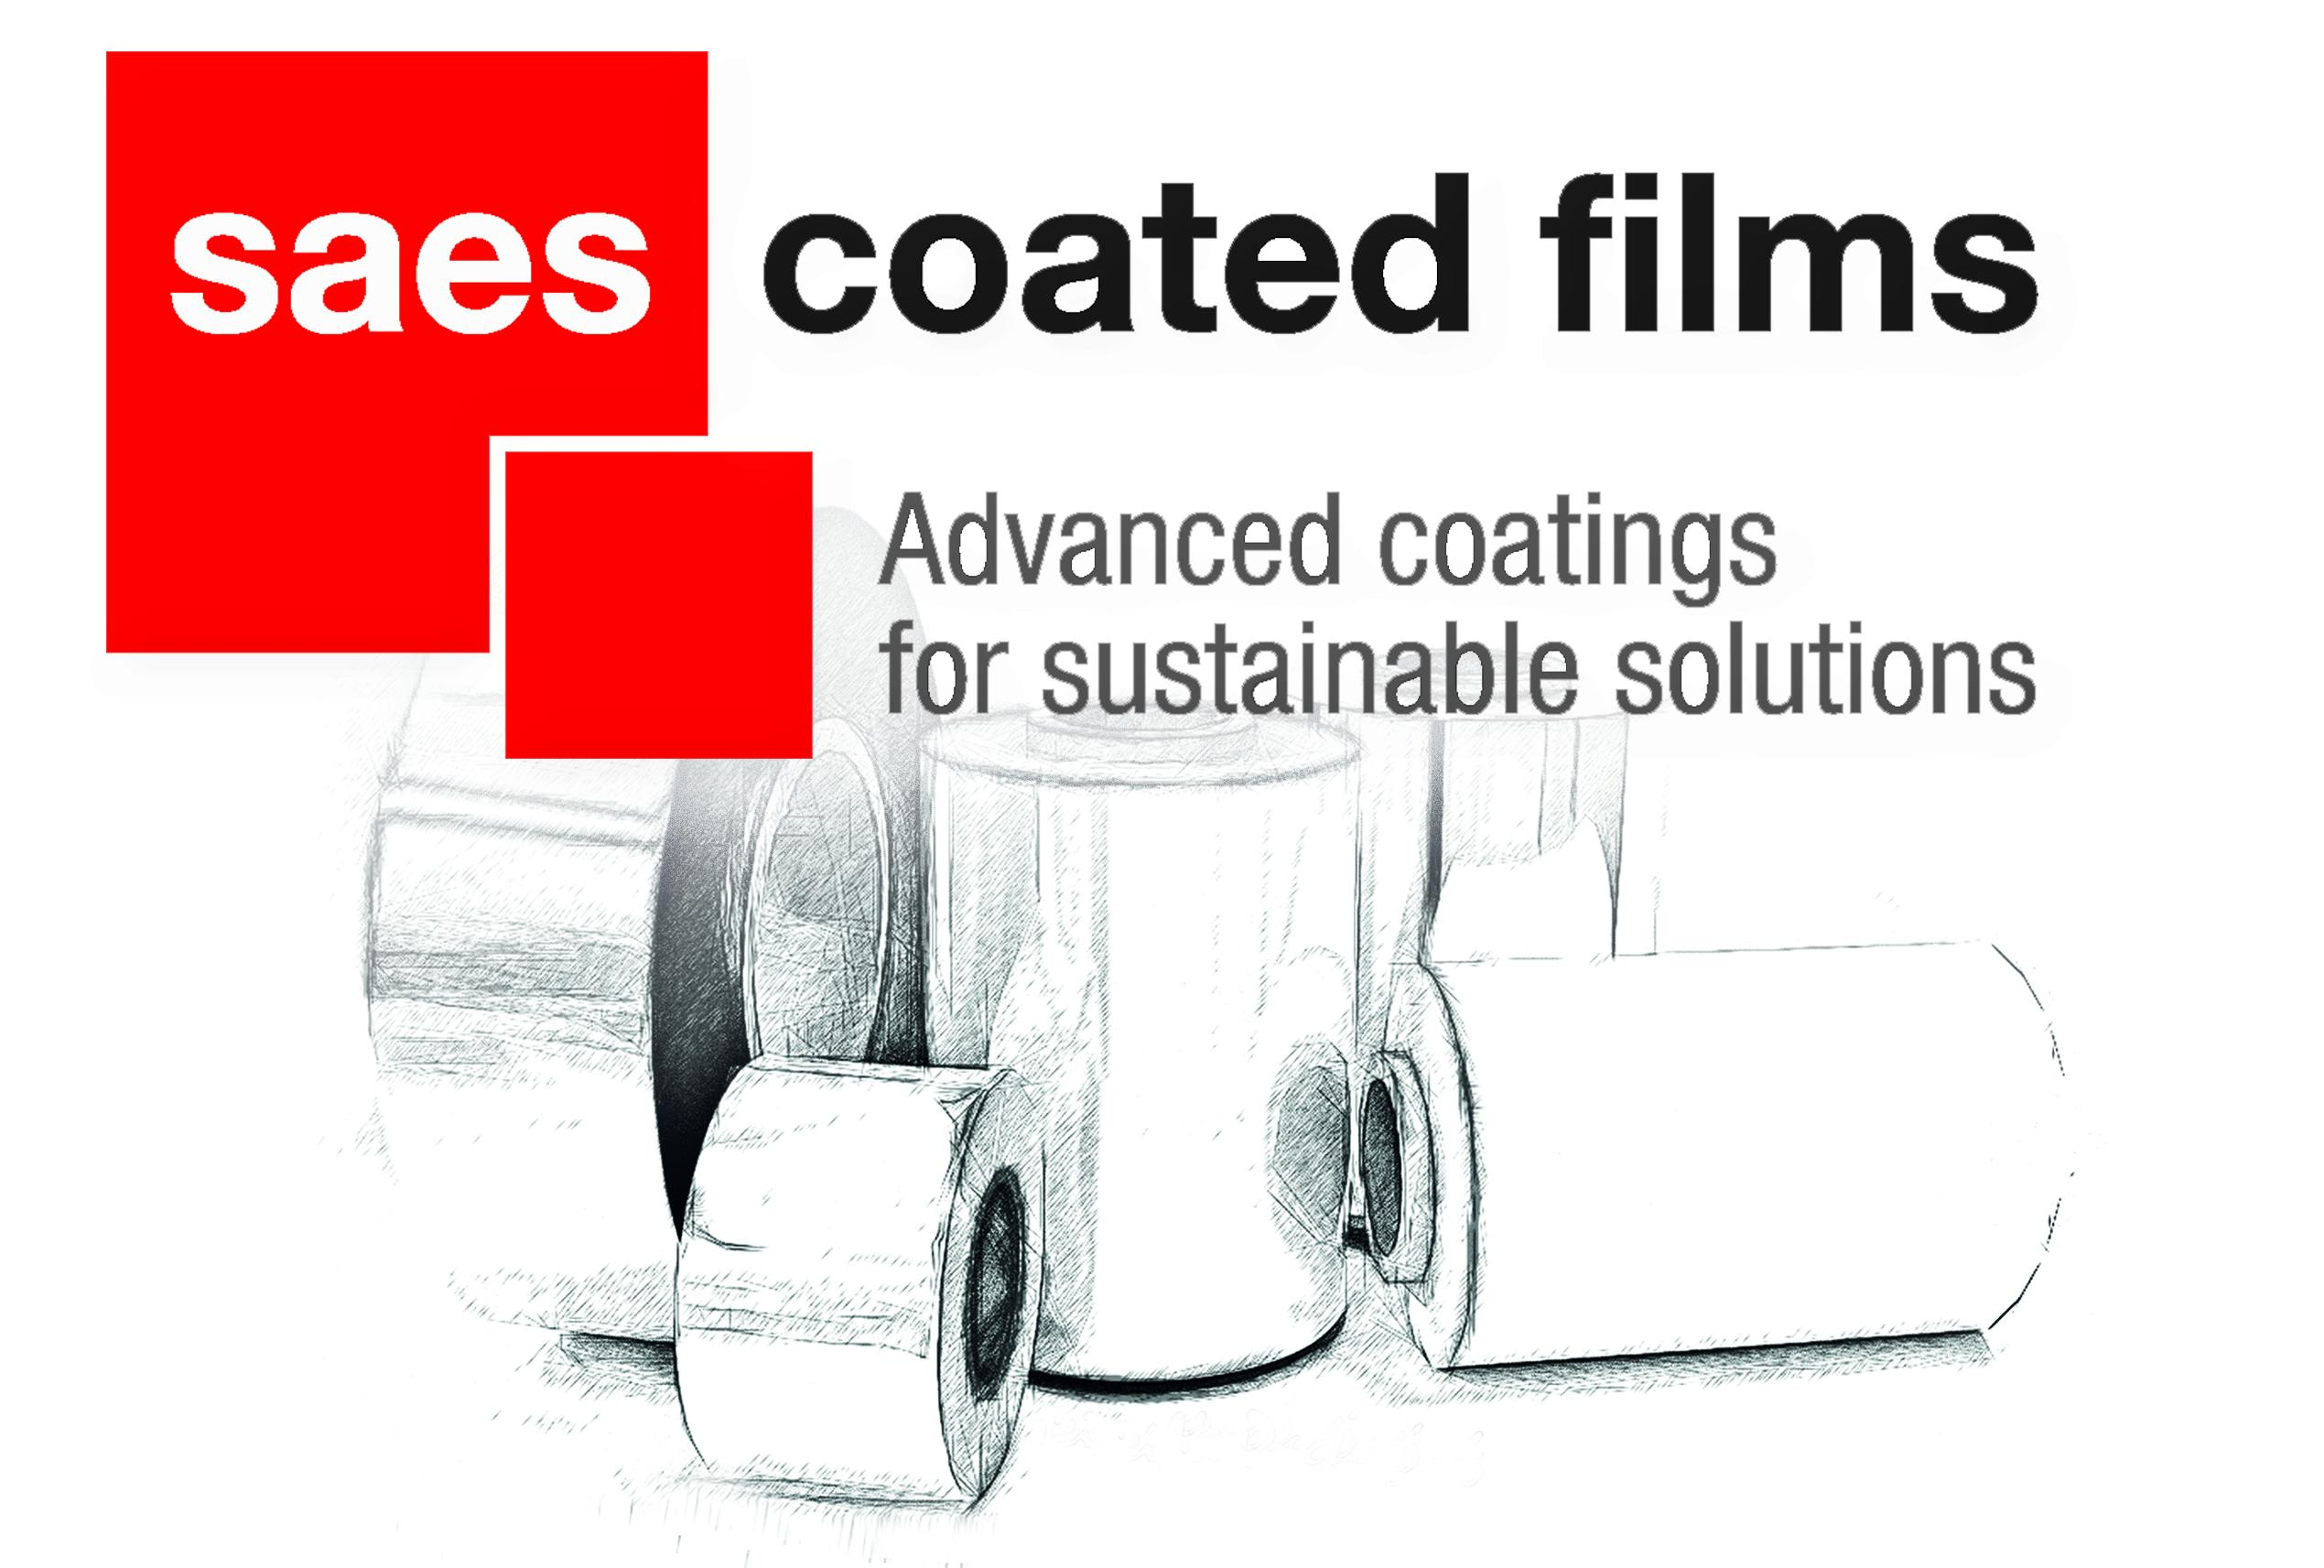 SAES COATED FILMS news.jpg